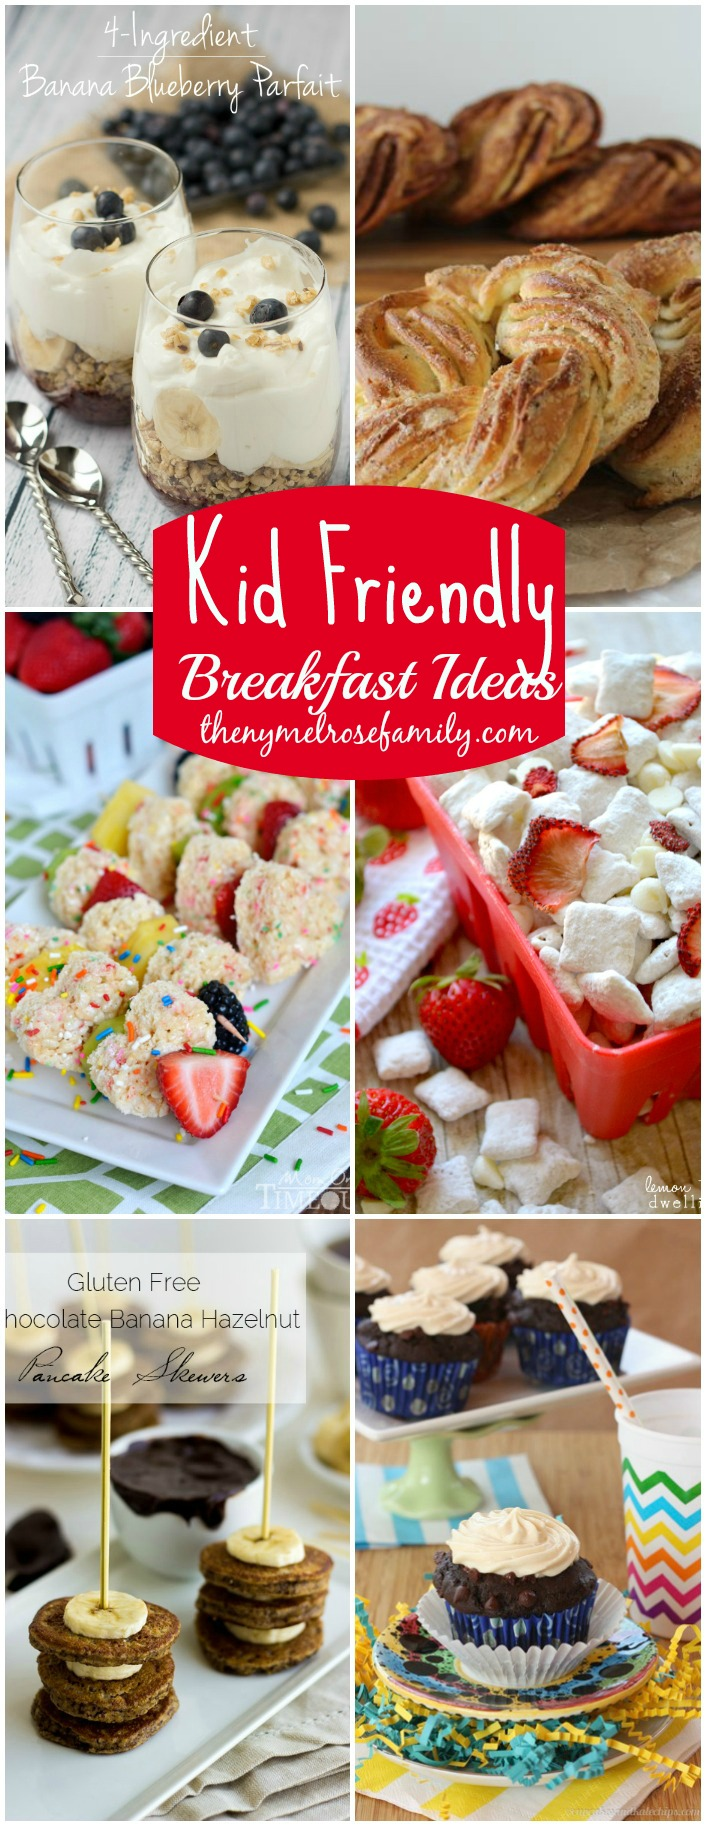 Kid Friendly Breakfast Ideas